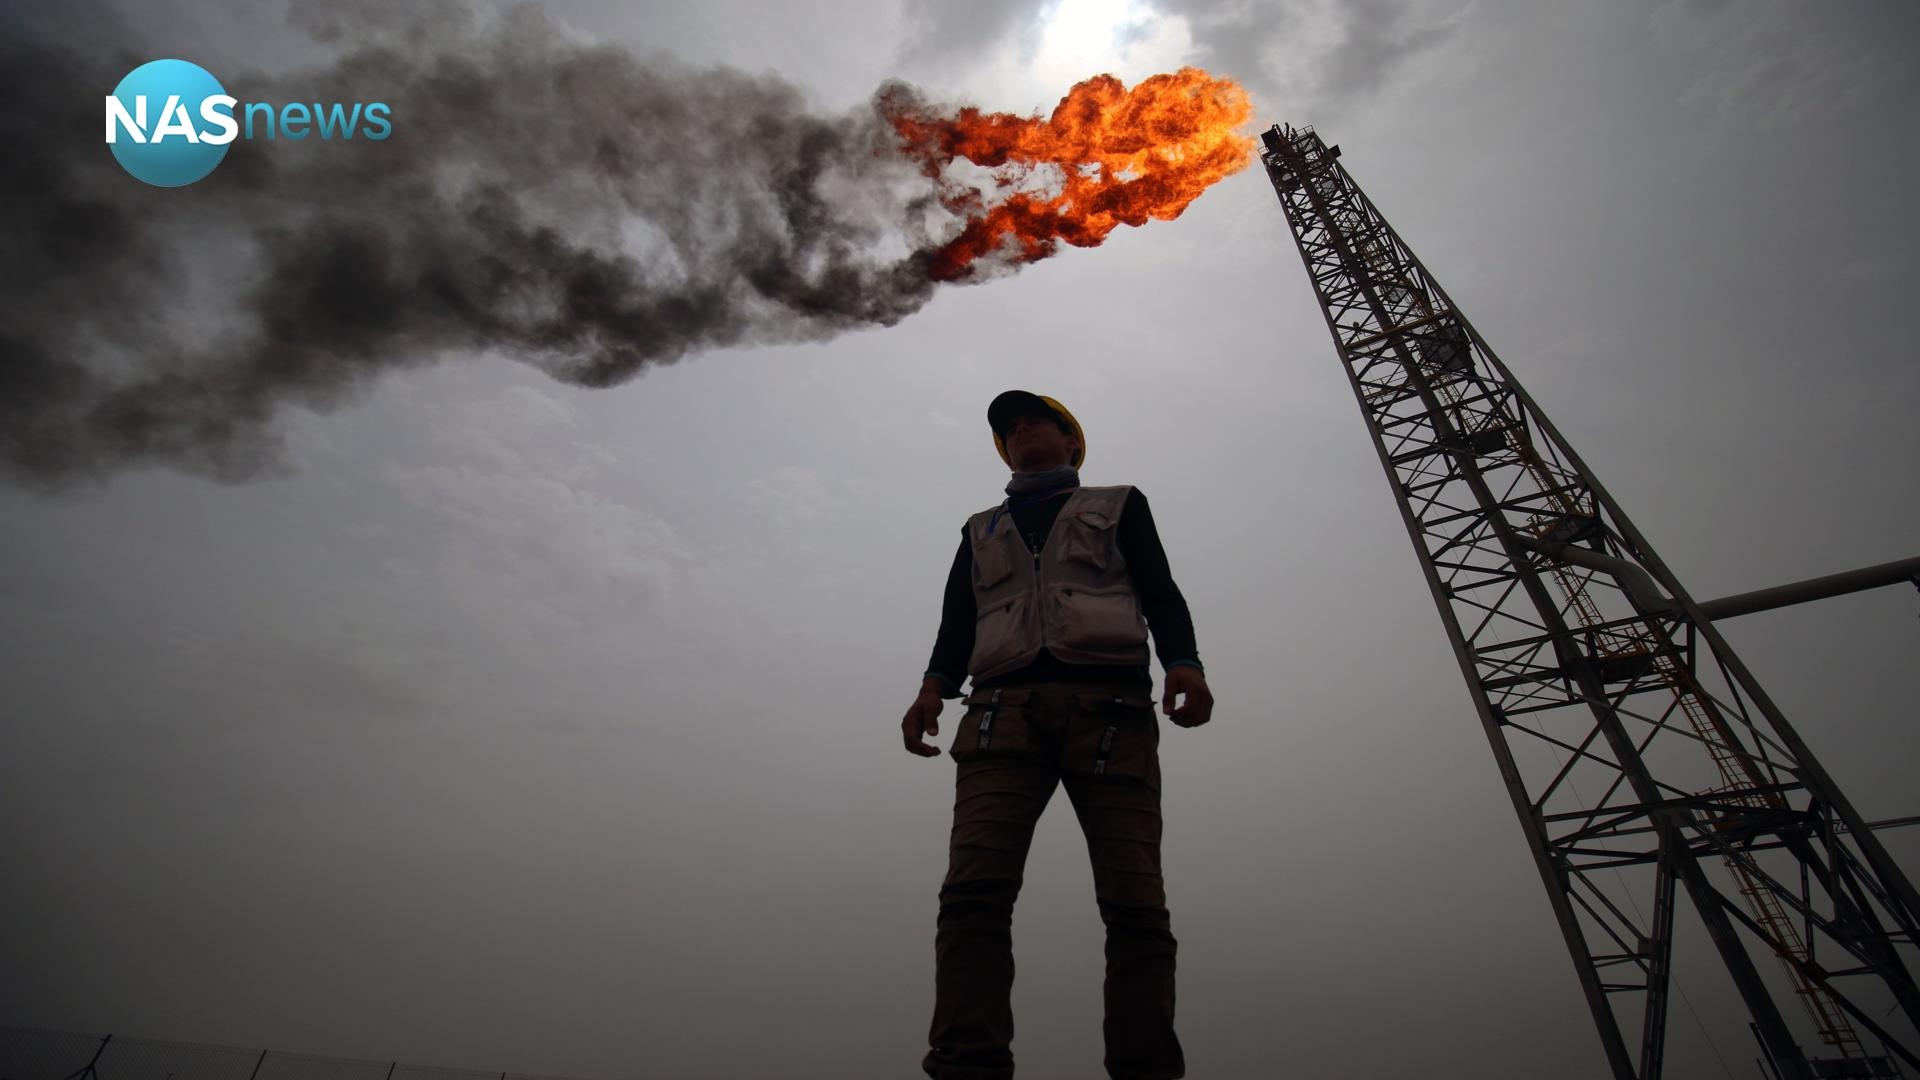 The Ministry of Oil reveals an agreement with international companies to invest in renewable energy